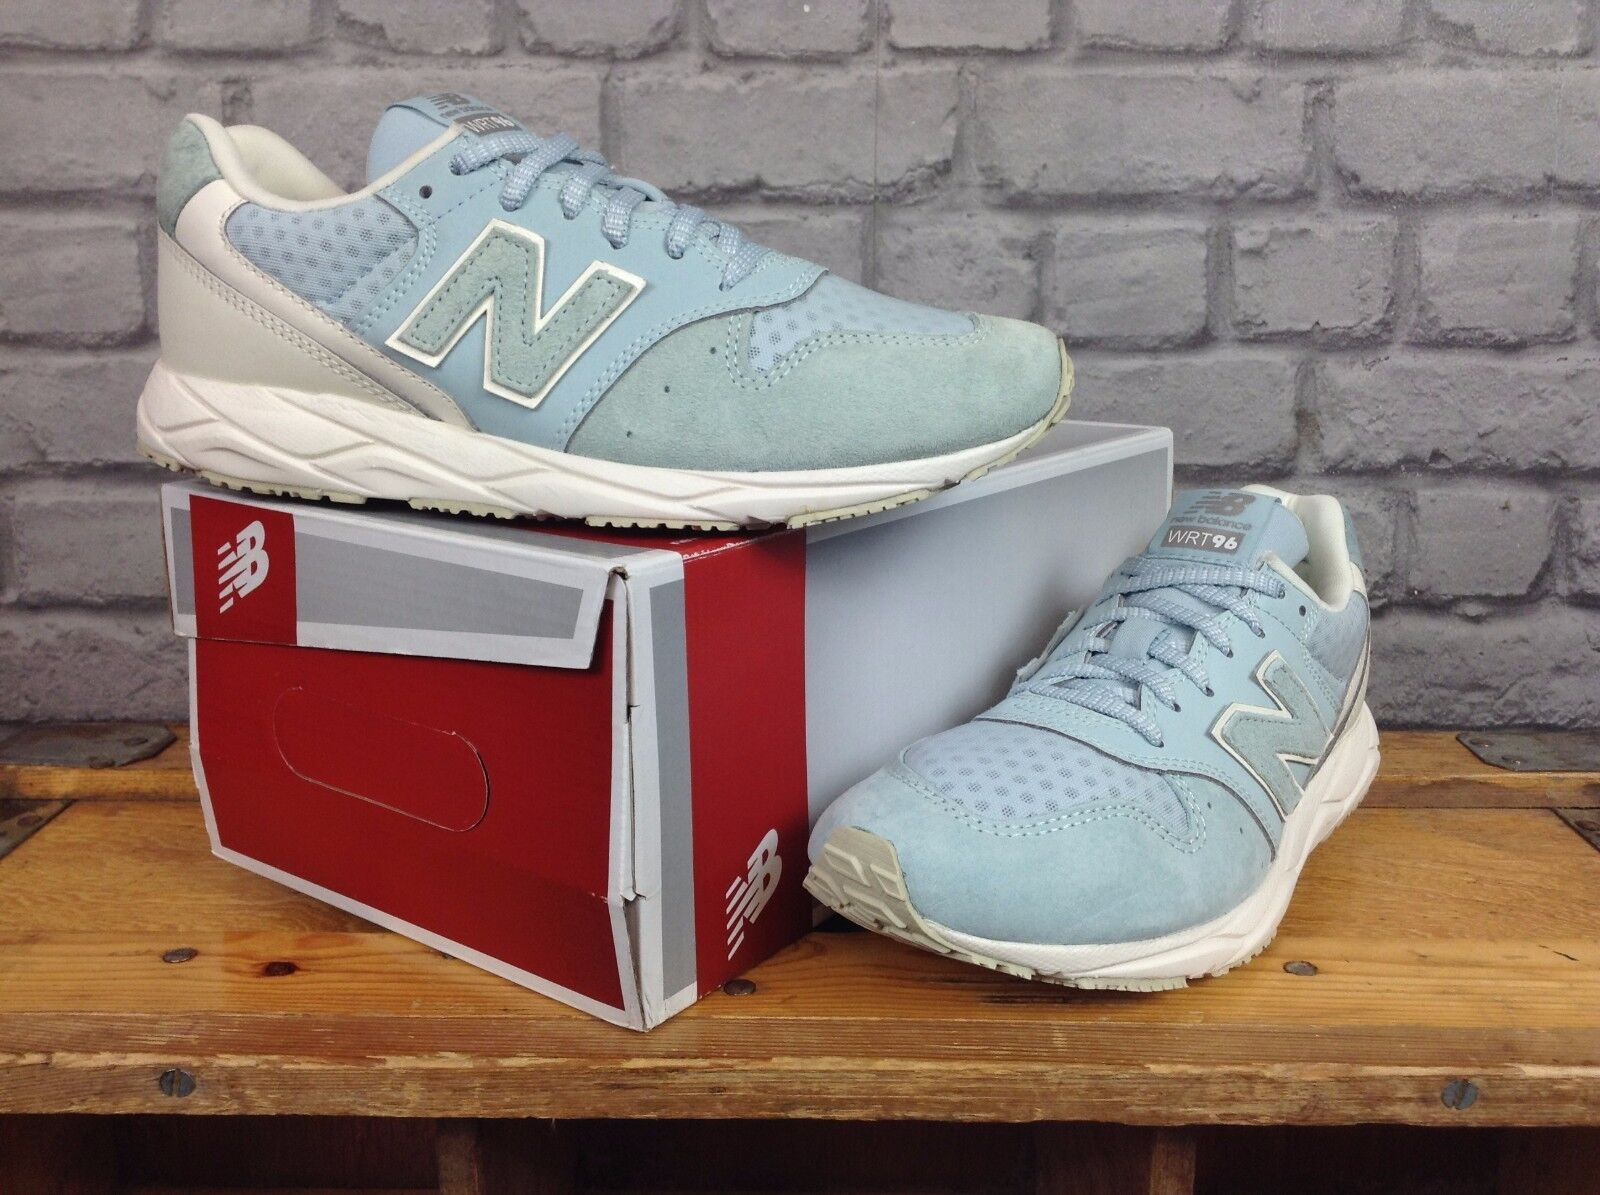 NEW BALANCE 96 LADIES SUEDE UK 6,7 PALE BLUE SUEDE LADIES TRAINERS e3cd4e